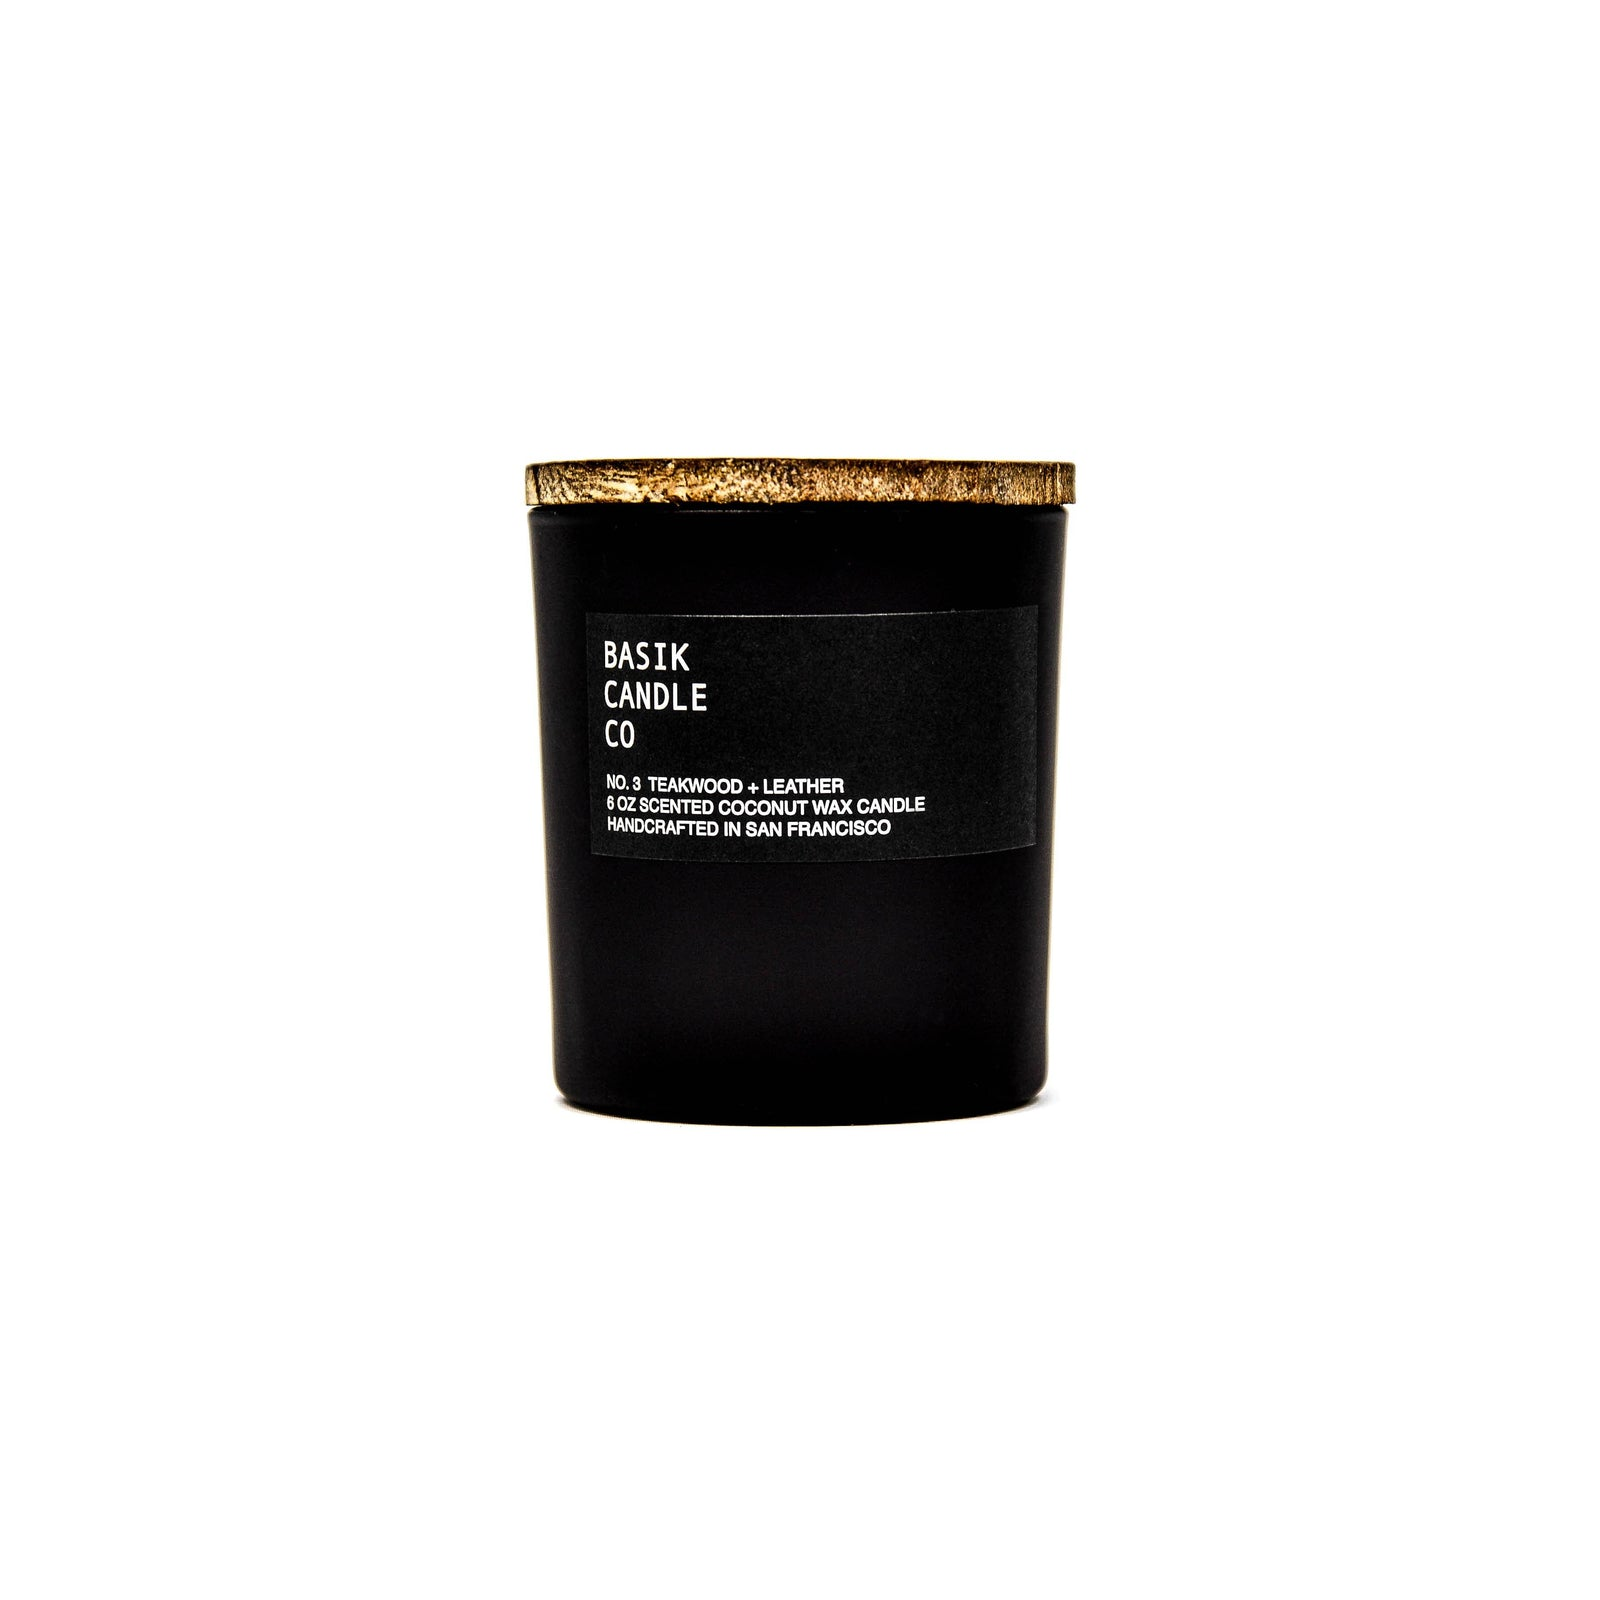 Basik Candle Co Candle No. 3 Teakwood + Leather 6 oz candle